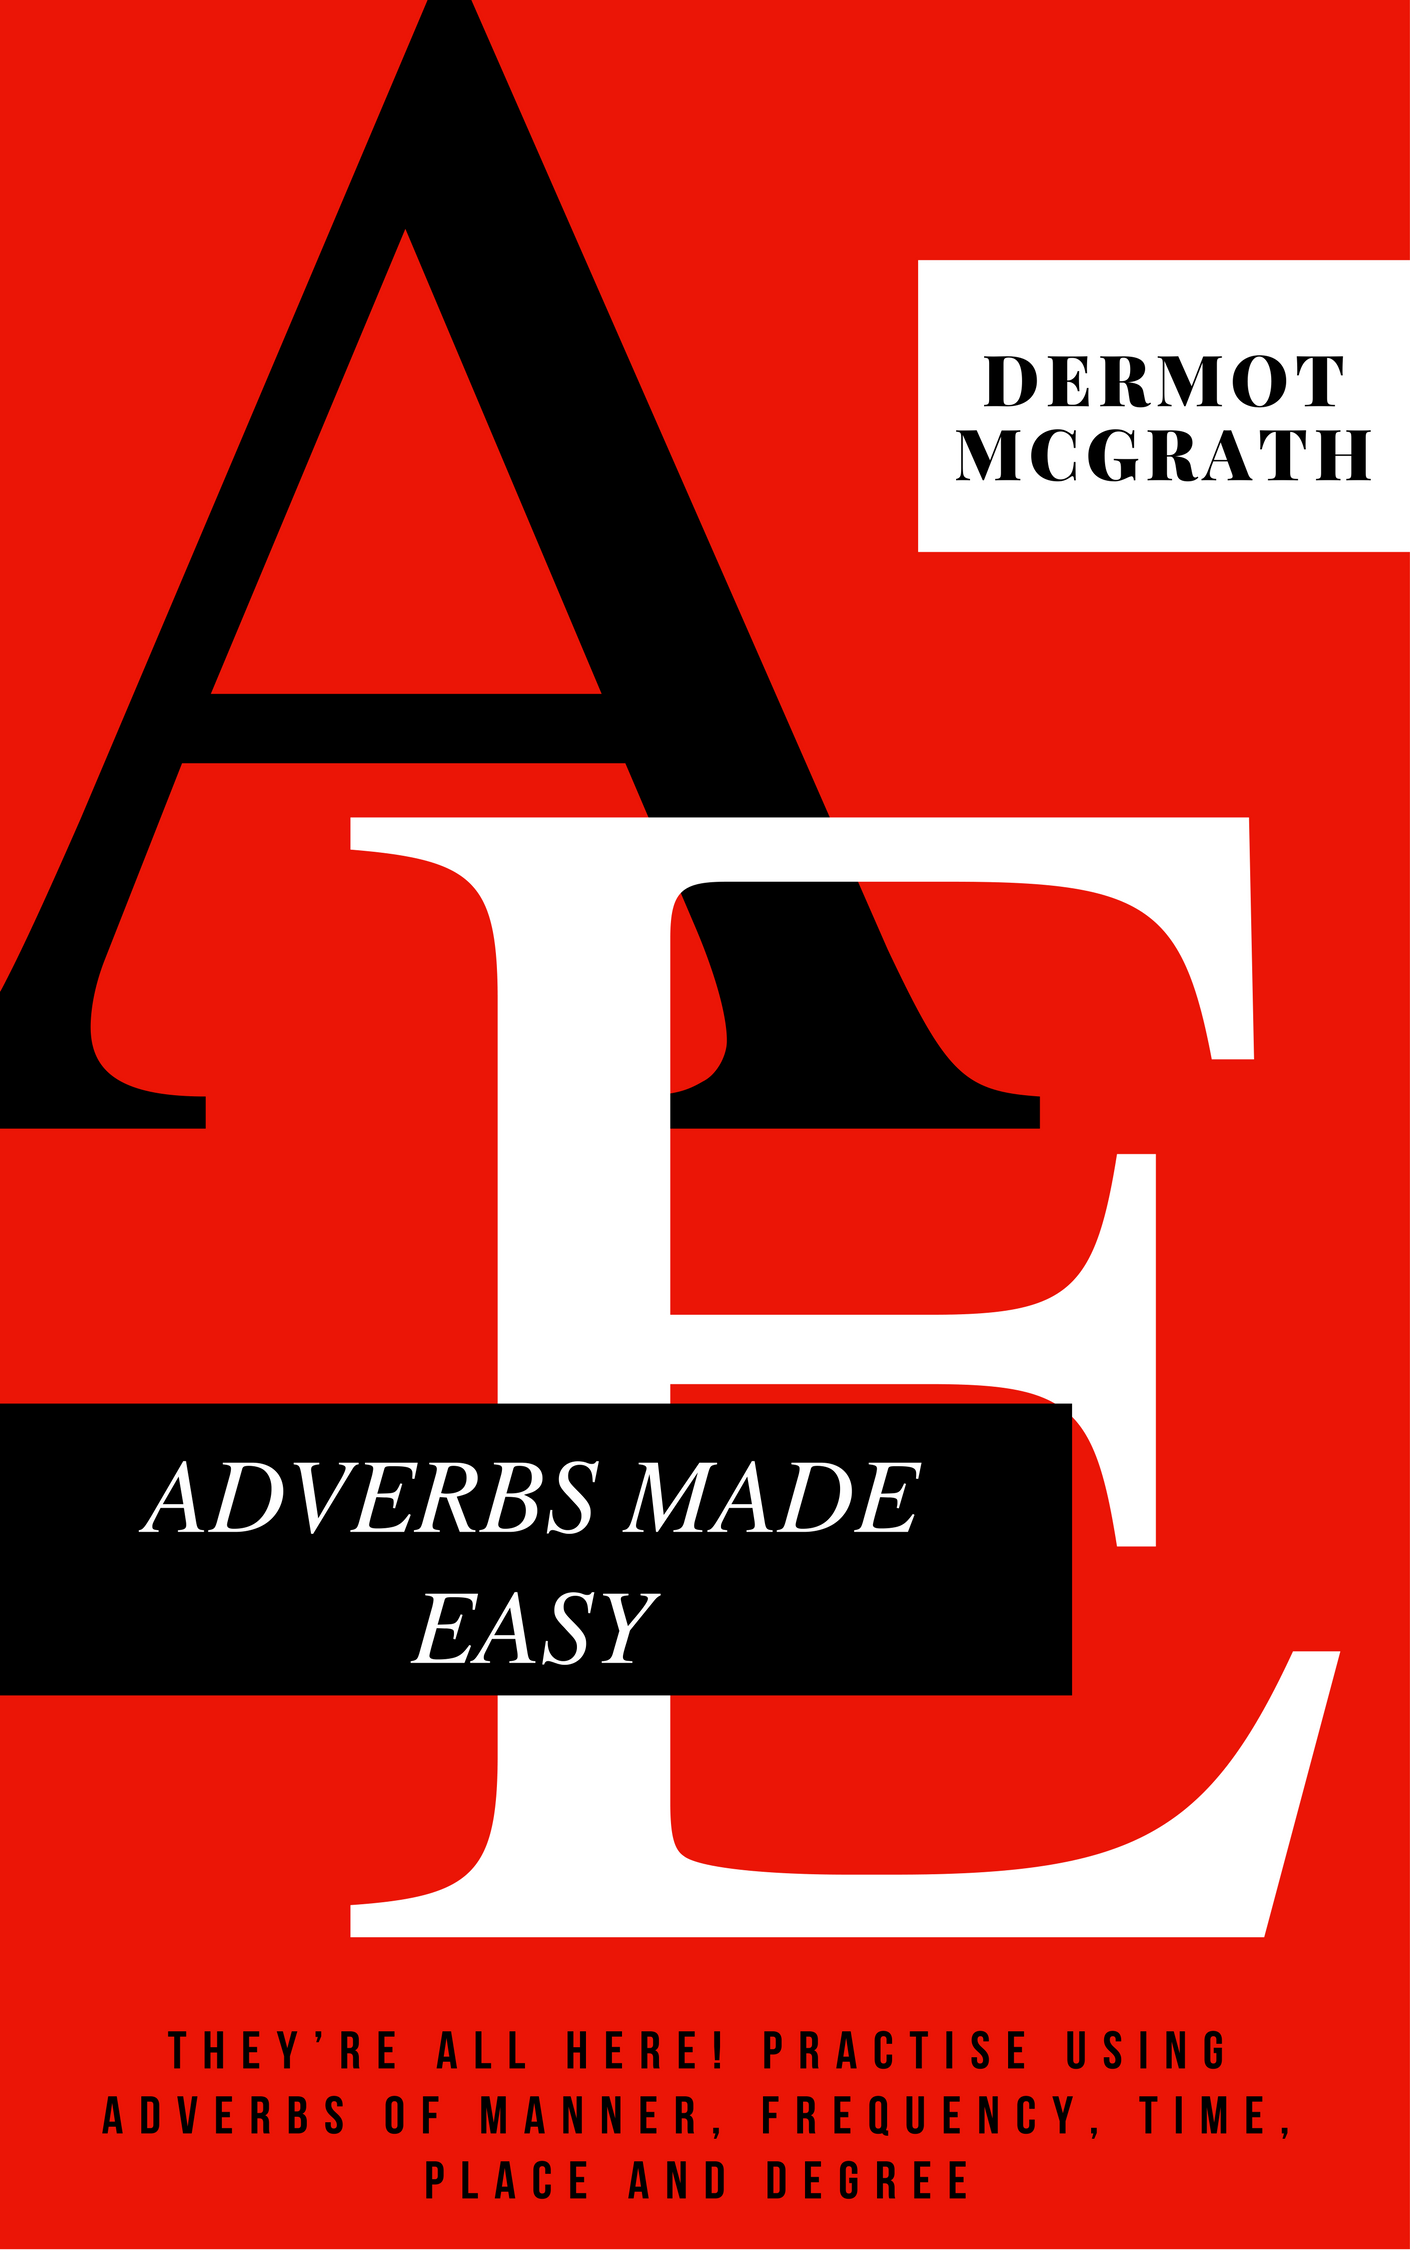 ADVERBS MADE EASY - Dermot McGrath